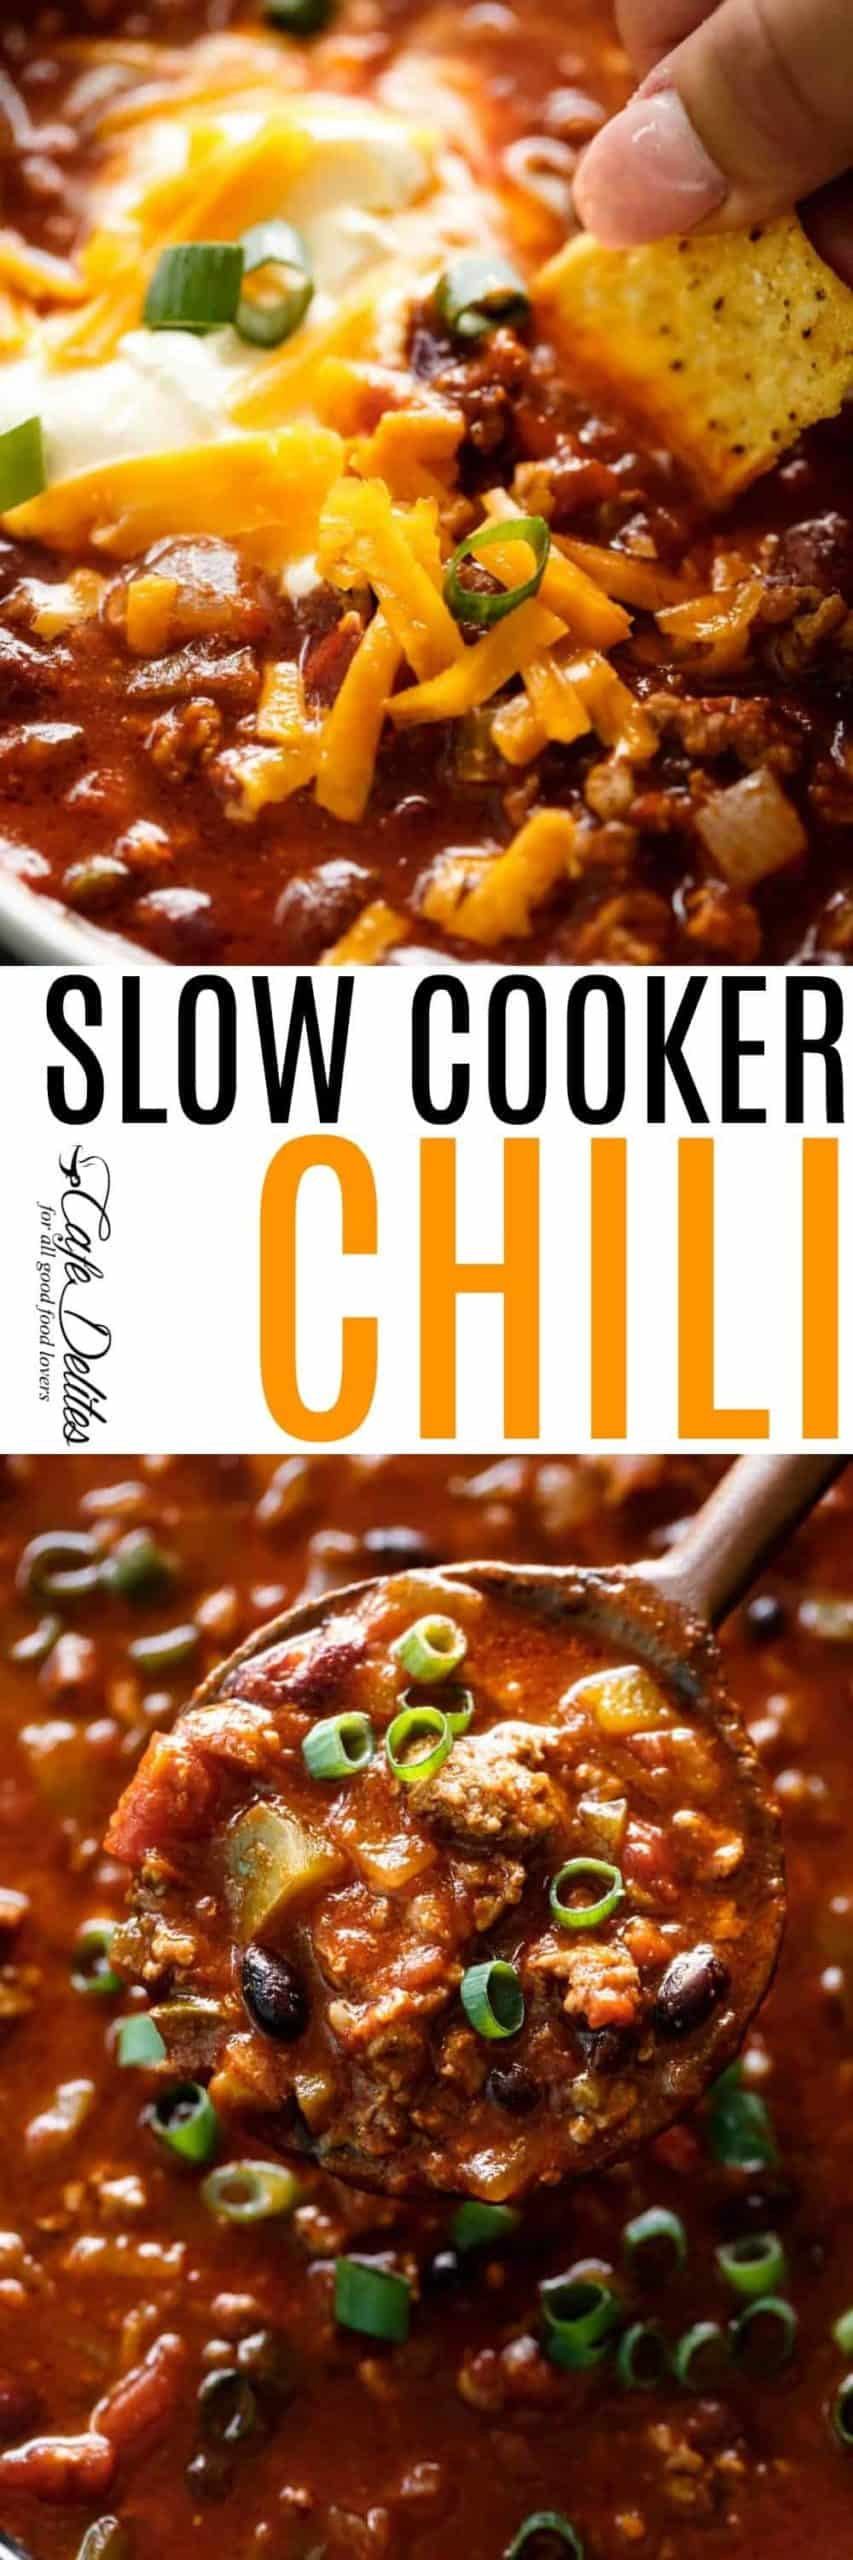 Slow Cooker Chili | cafedelites.com